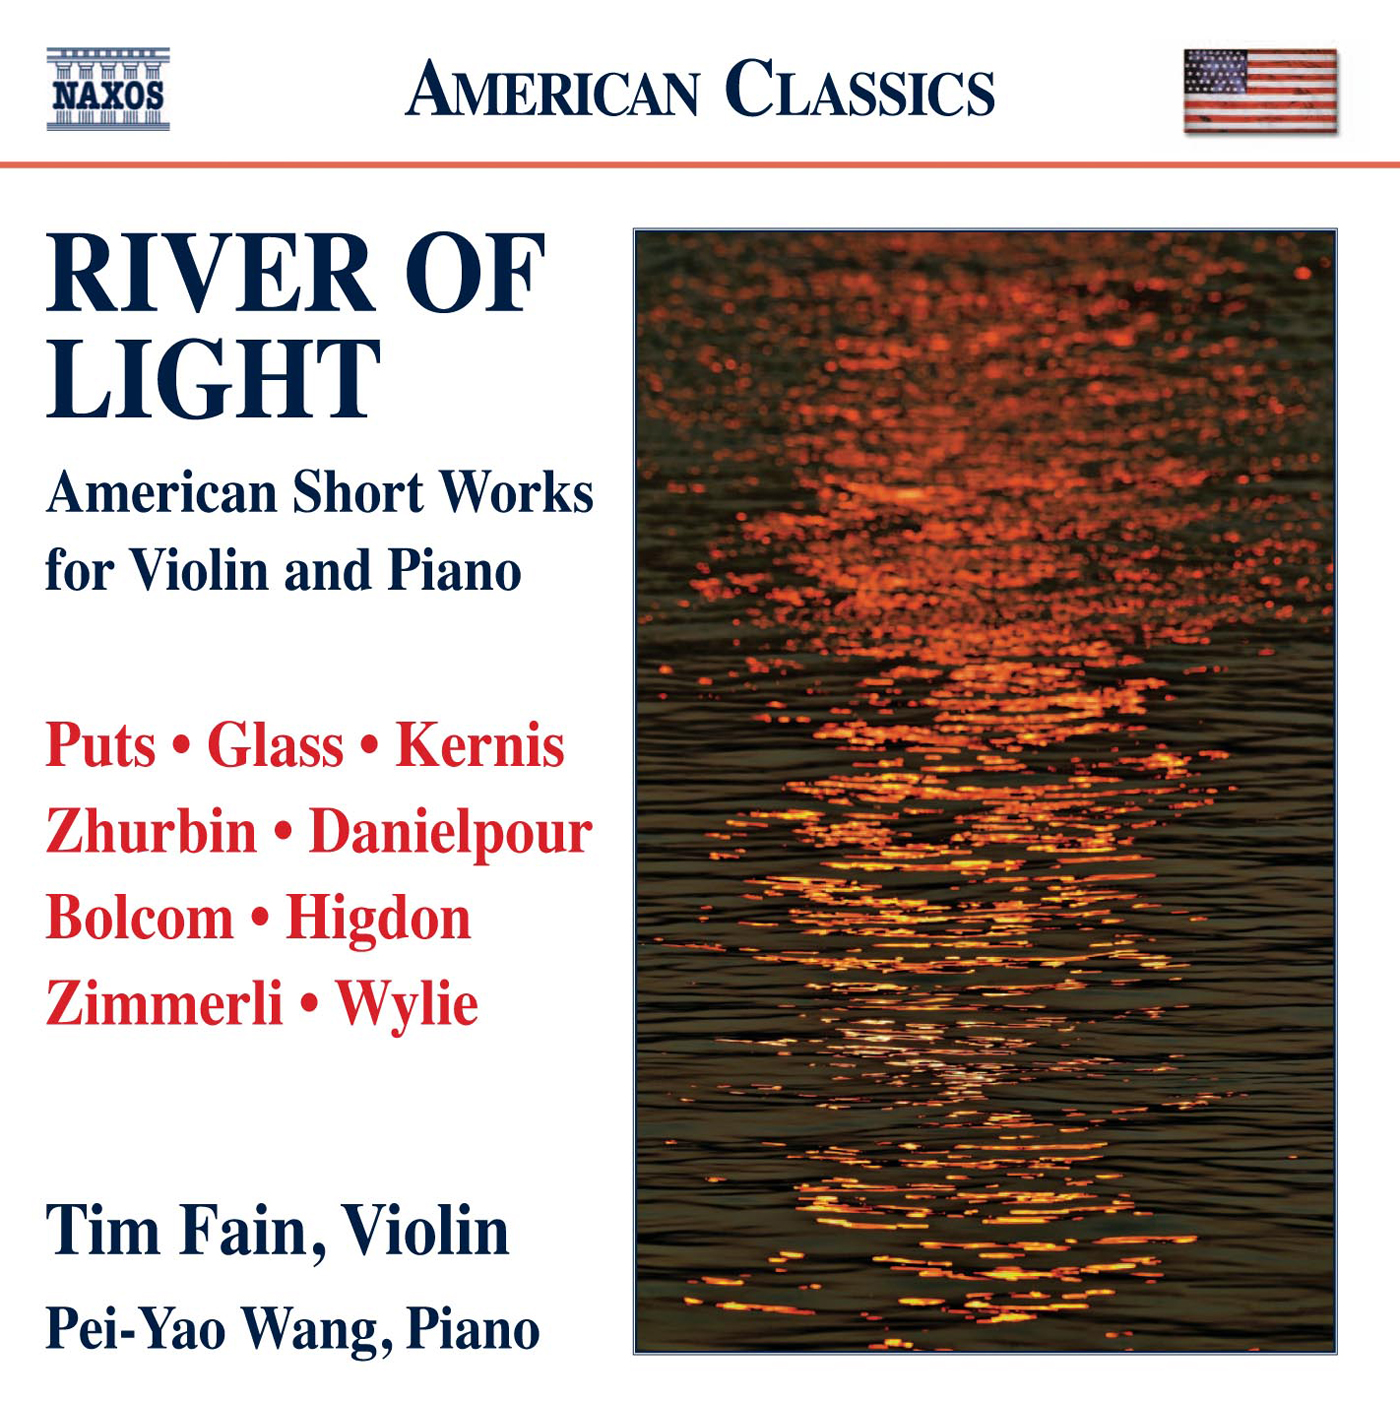 River of Light: American Short Works for Violin and Piano